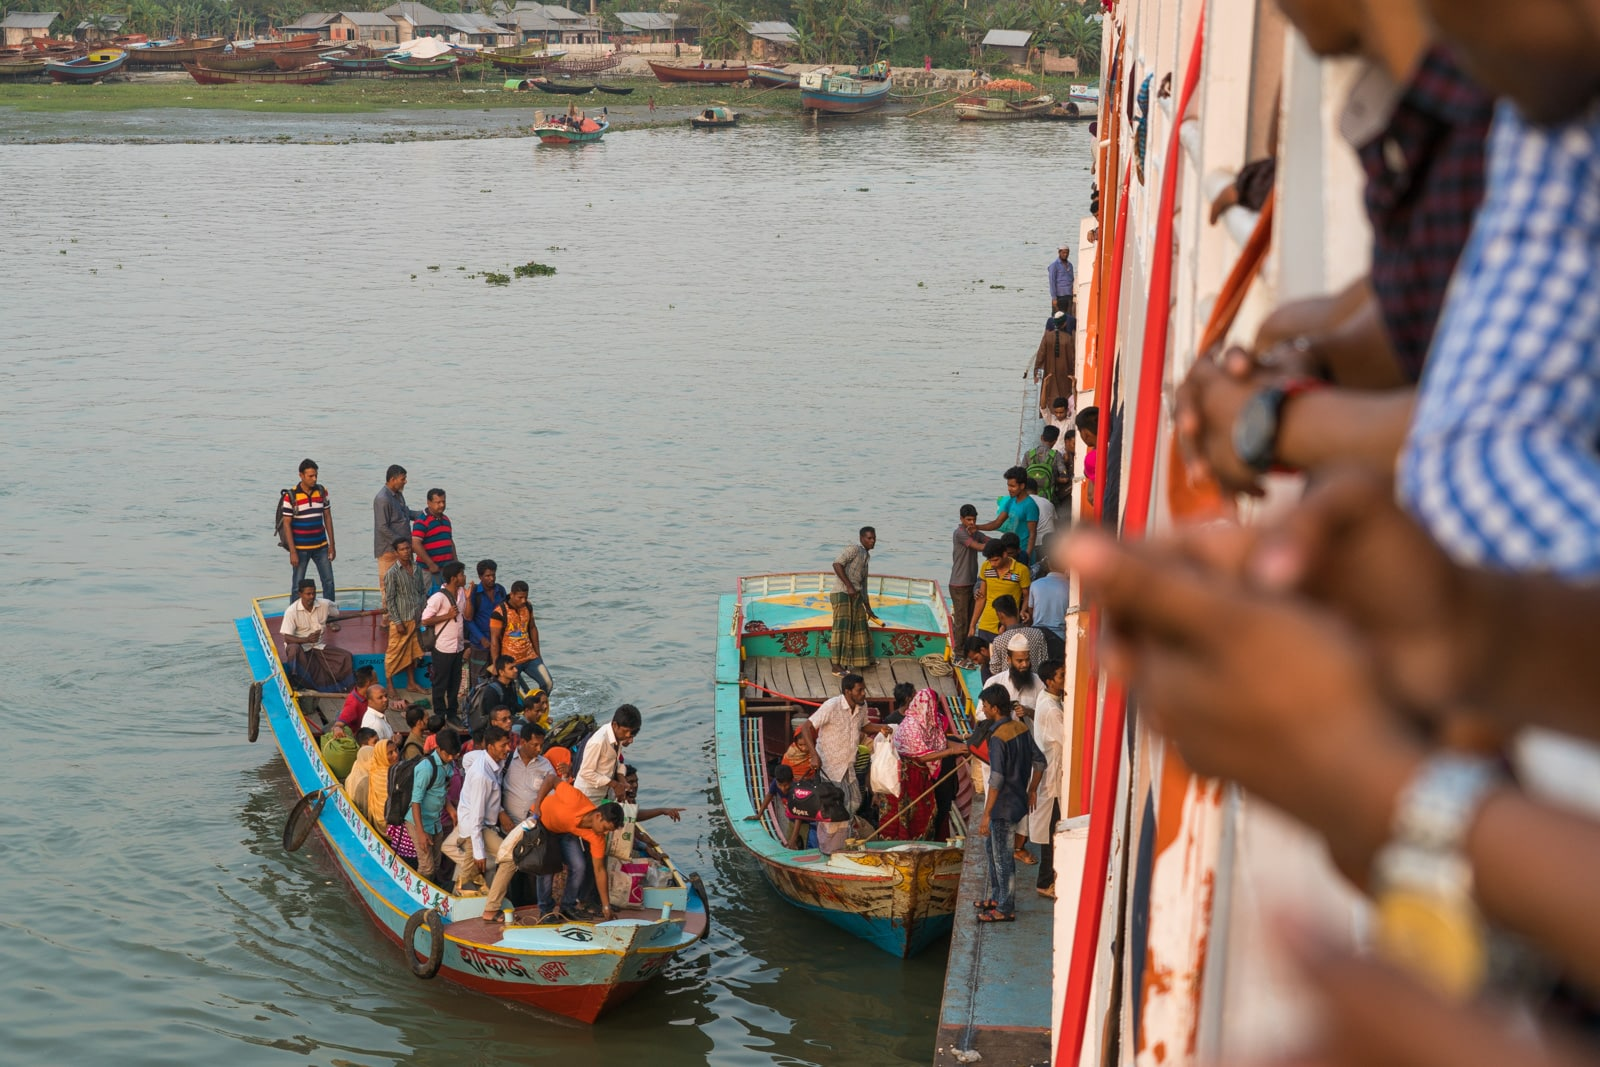 How to take a launch boat from Khulna to Dhaka via Hularhat, Bangladesh - People boating to the launch to climb aboard - Lost With Purpose travel blog